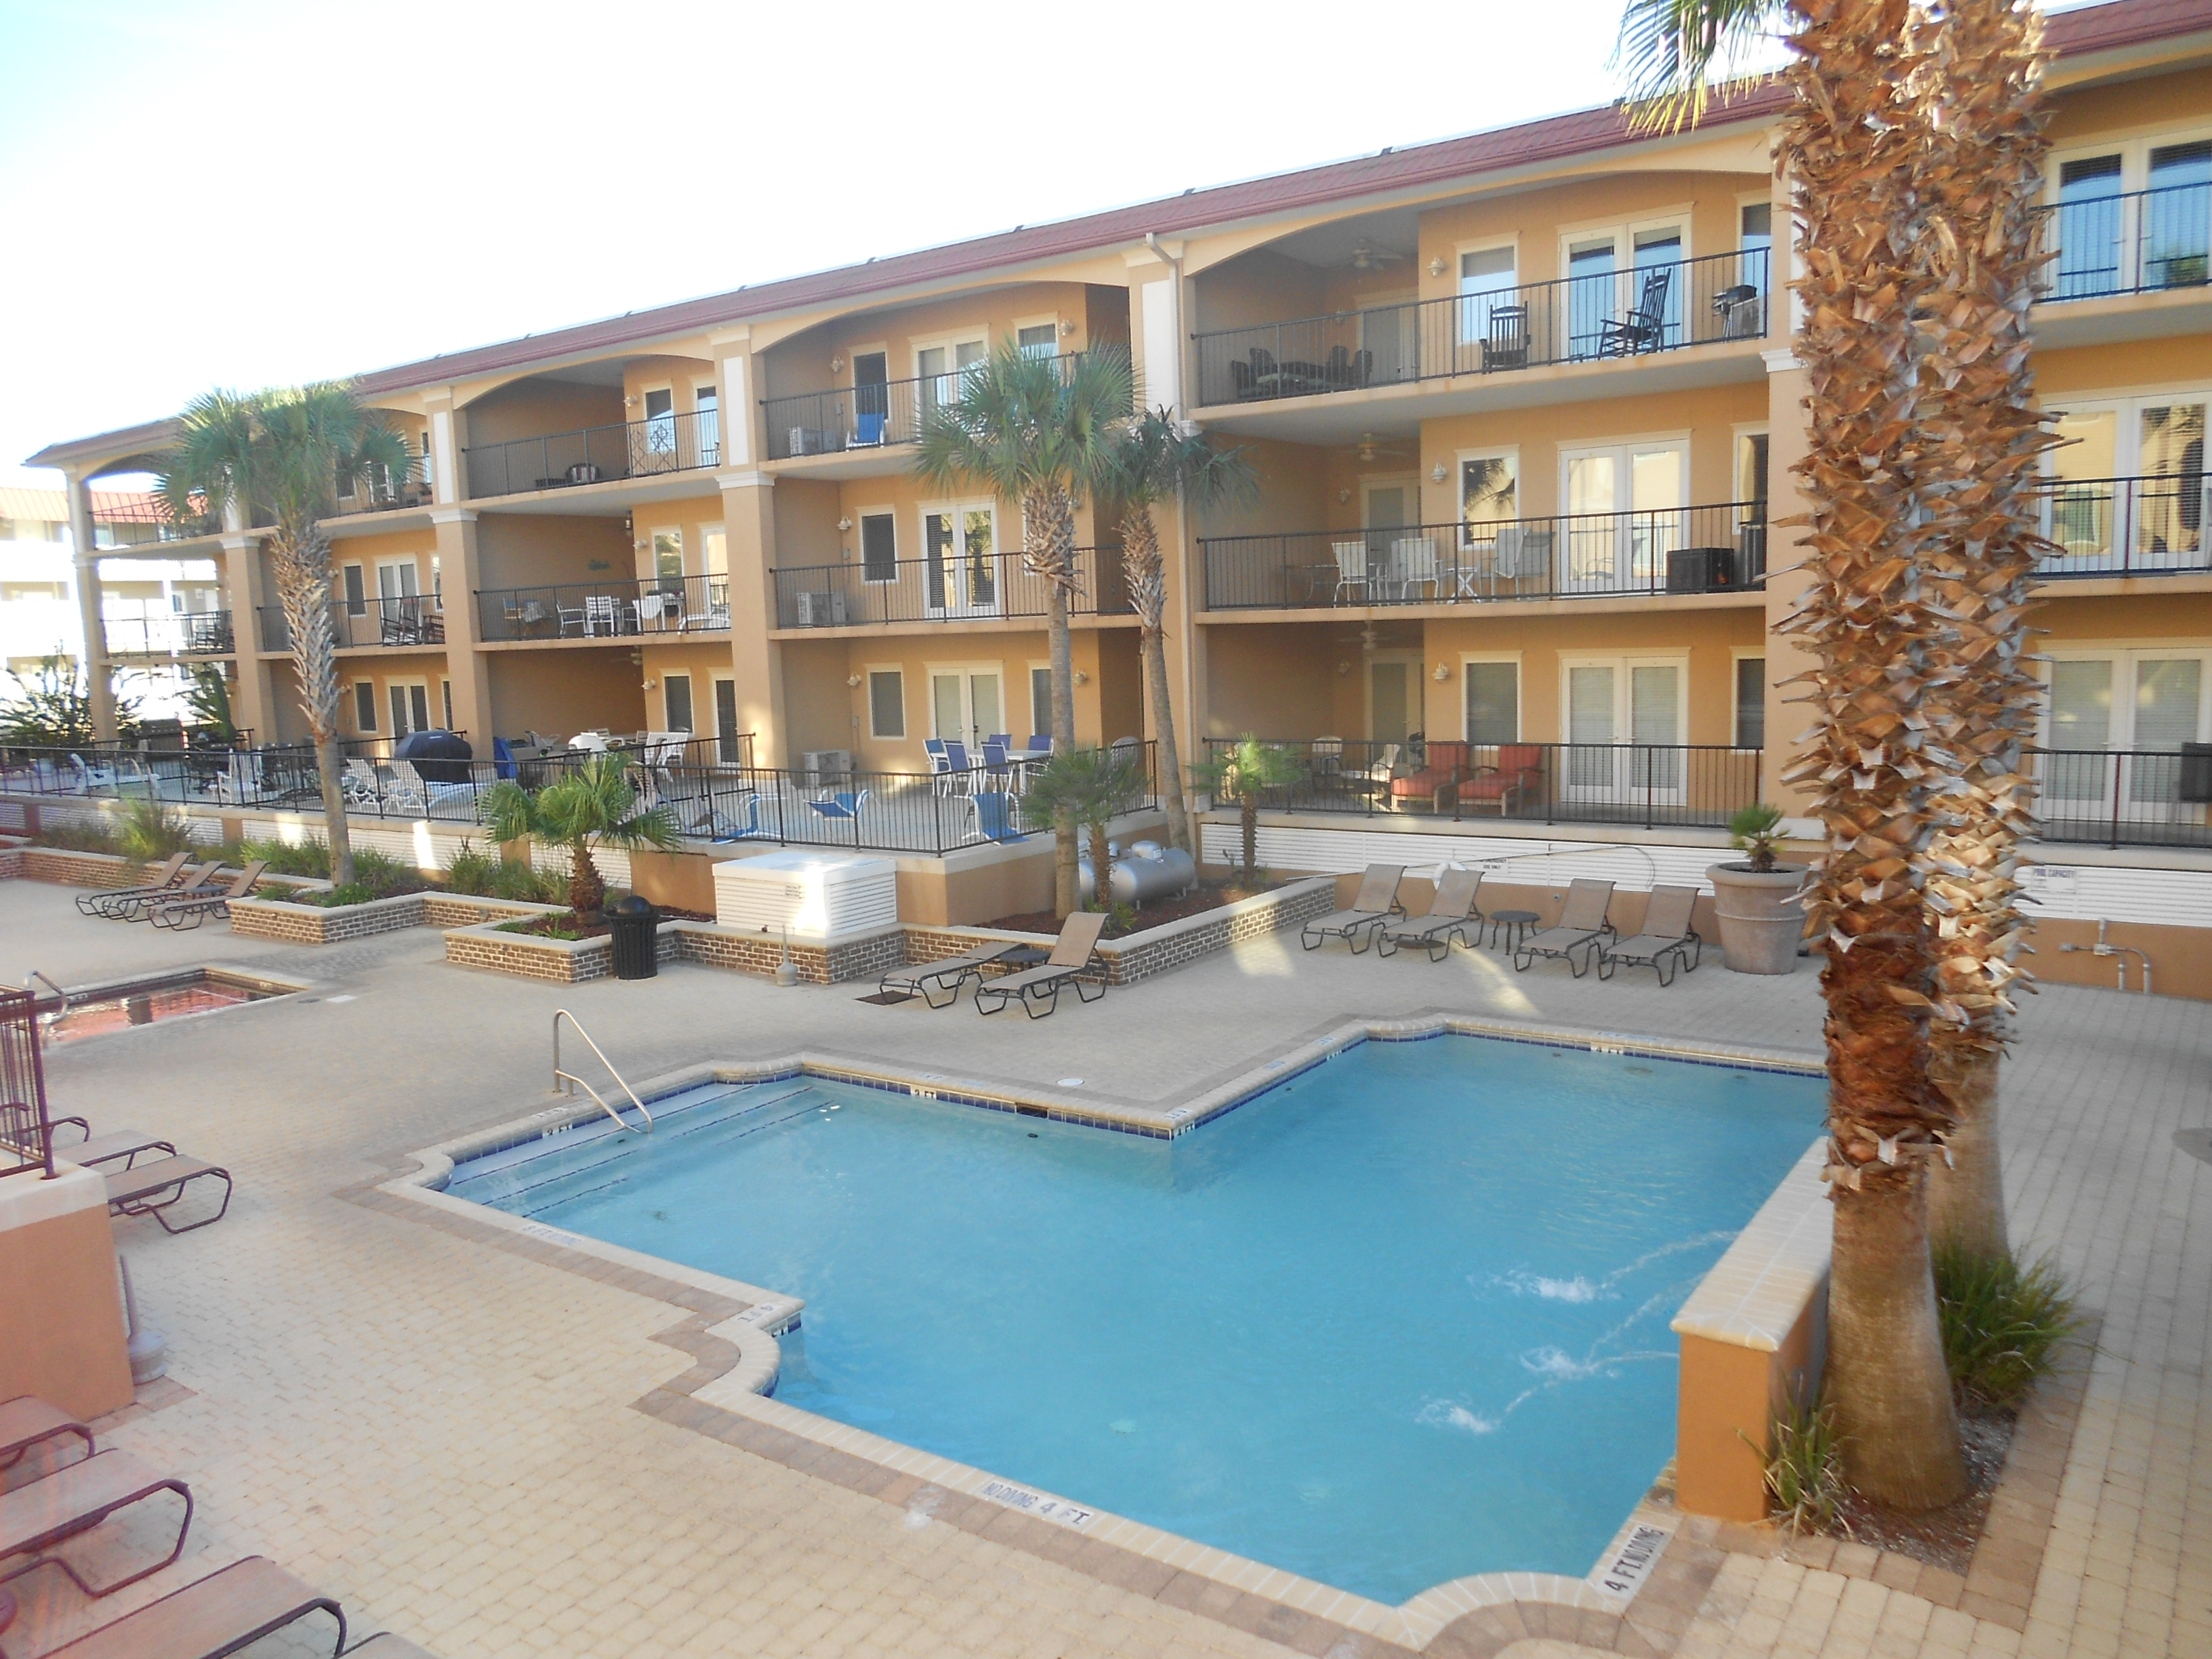 Condominium for Active at Tybee Island 3 15th St Unit 107 Tybee Island, Georgia 31328 United States